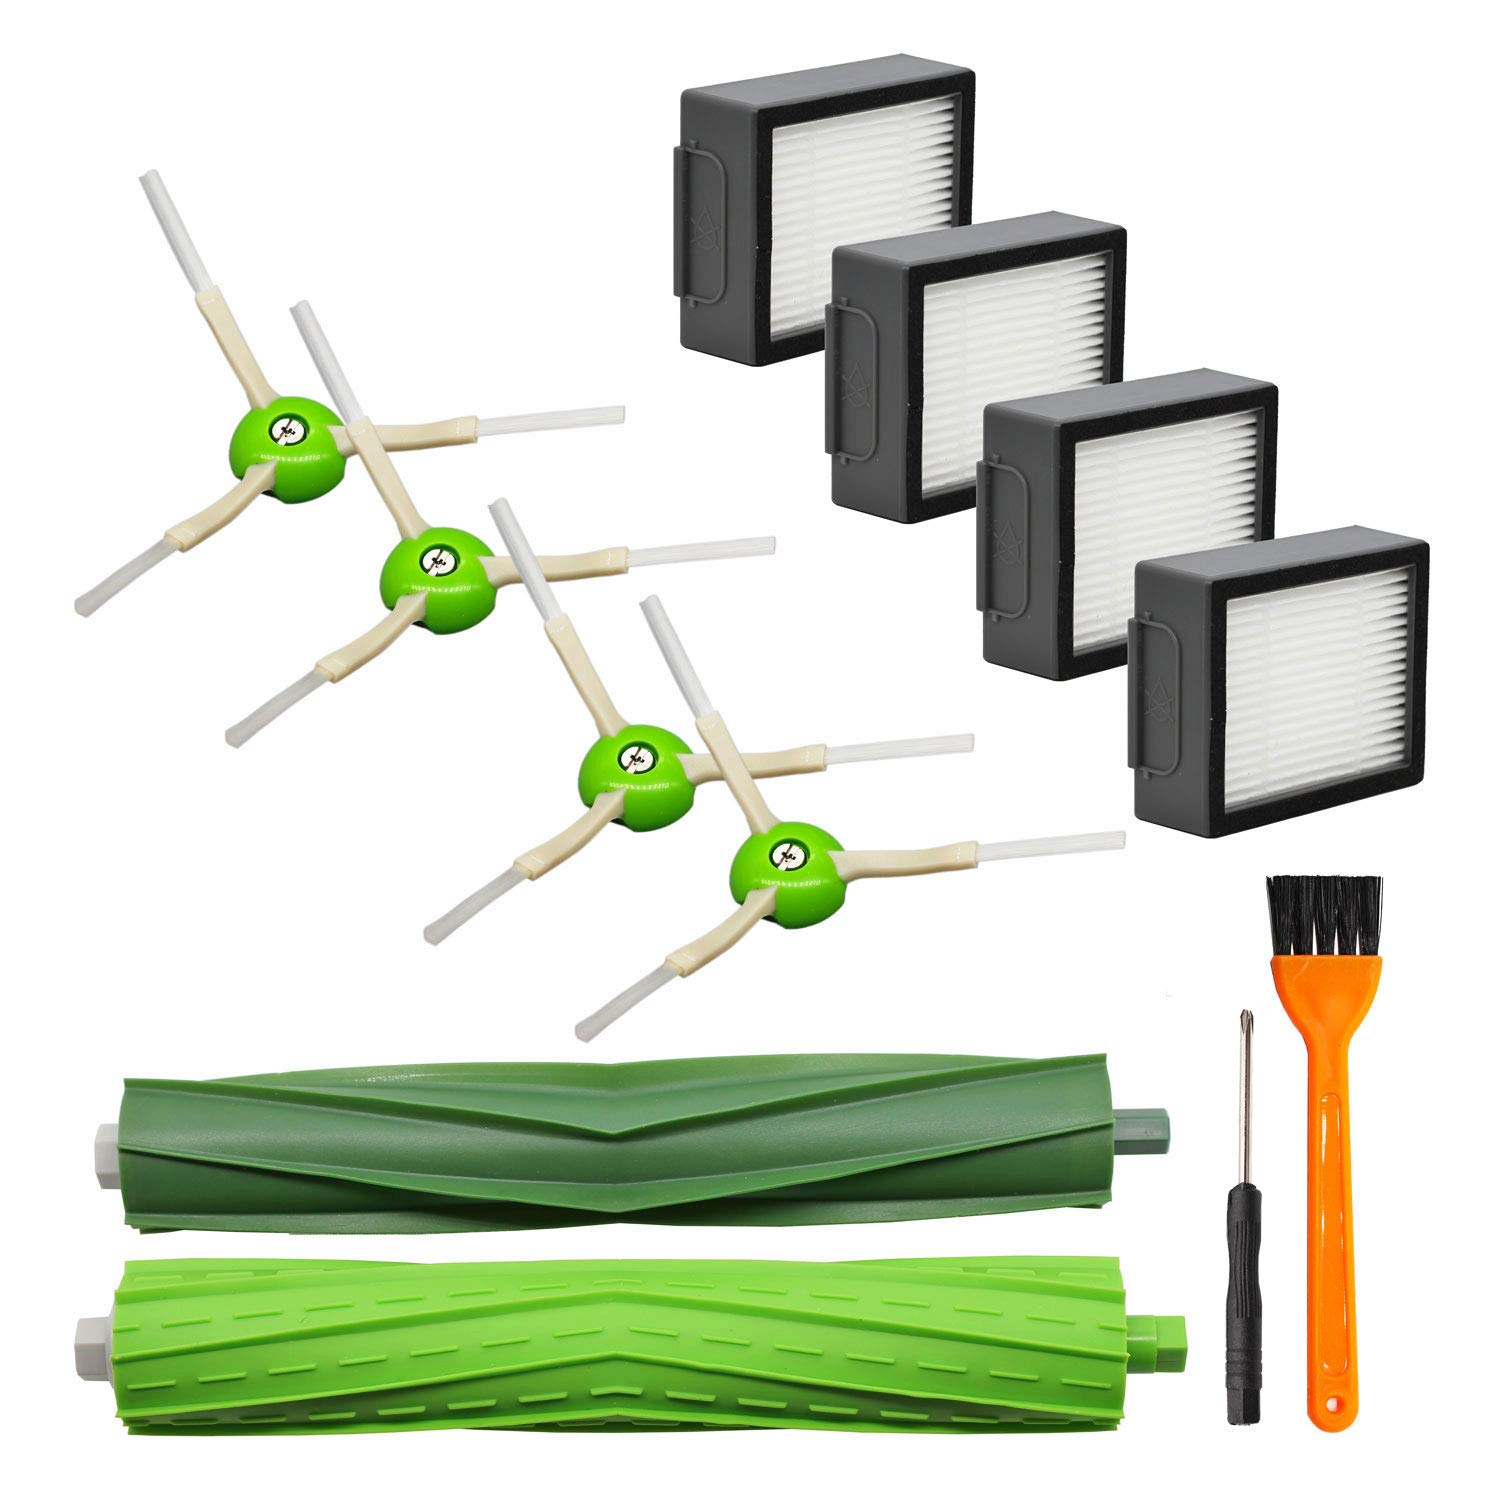 Lemige 9 Pack Replacement Parts for iRobot Roomba i7 i7+/i7 Plus E5 E6 Vacuum Cleaner Set, 1 Set of Multi-Surface Rubber Brushes & 4 Pack HEPA Filters & 4 Pack Edge-Sweeping Brushes